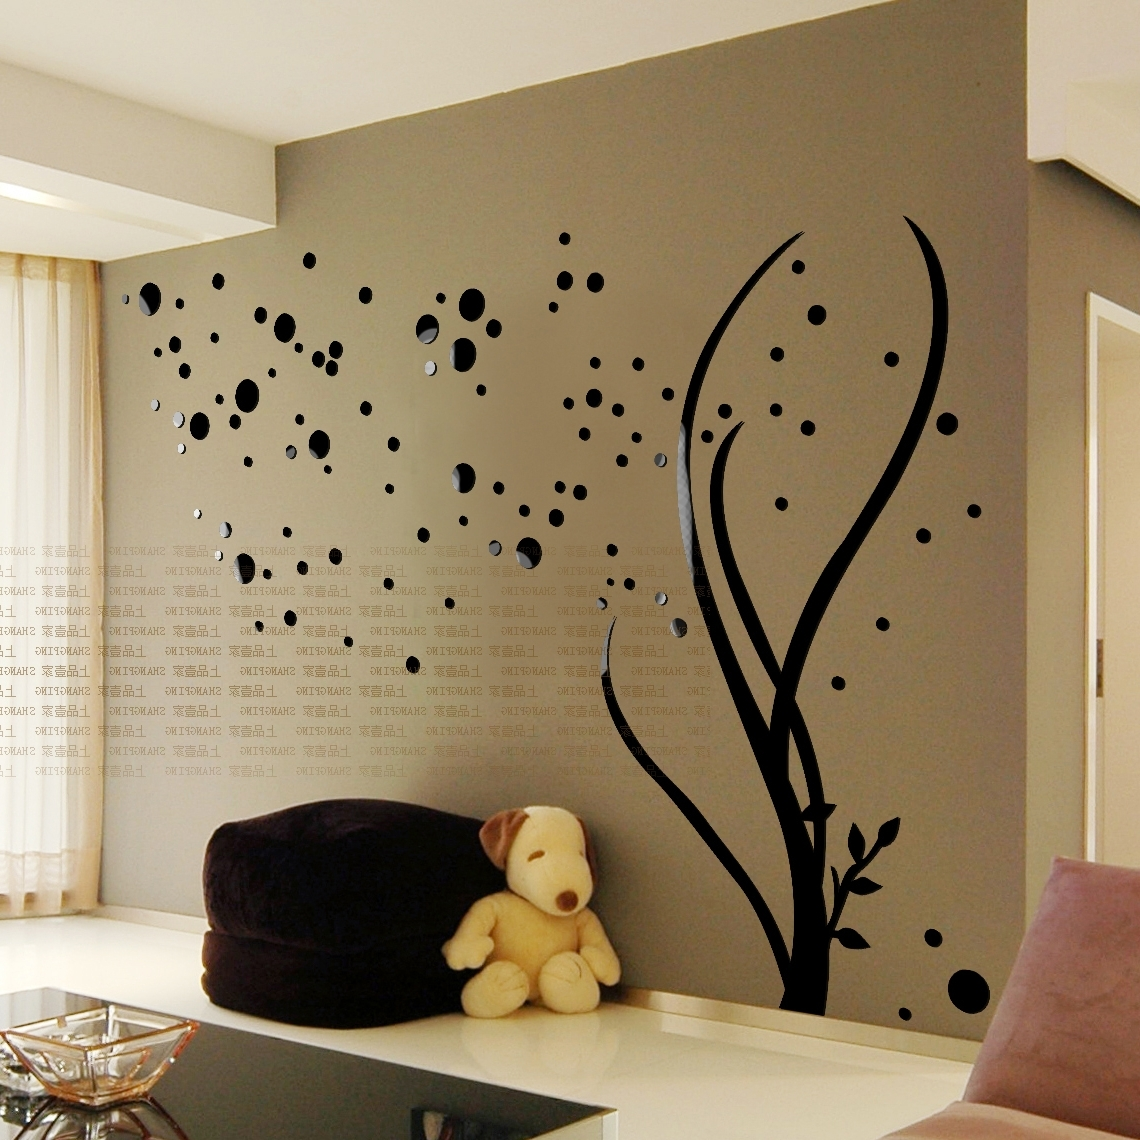 3D Tree Wall Art Regarding Current 3D Acrylic Family Tree Wall Stickers Living Room Wall Art Decal (Gallery 9 of 15)